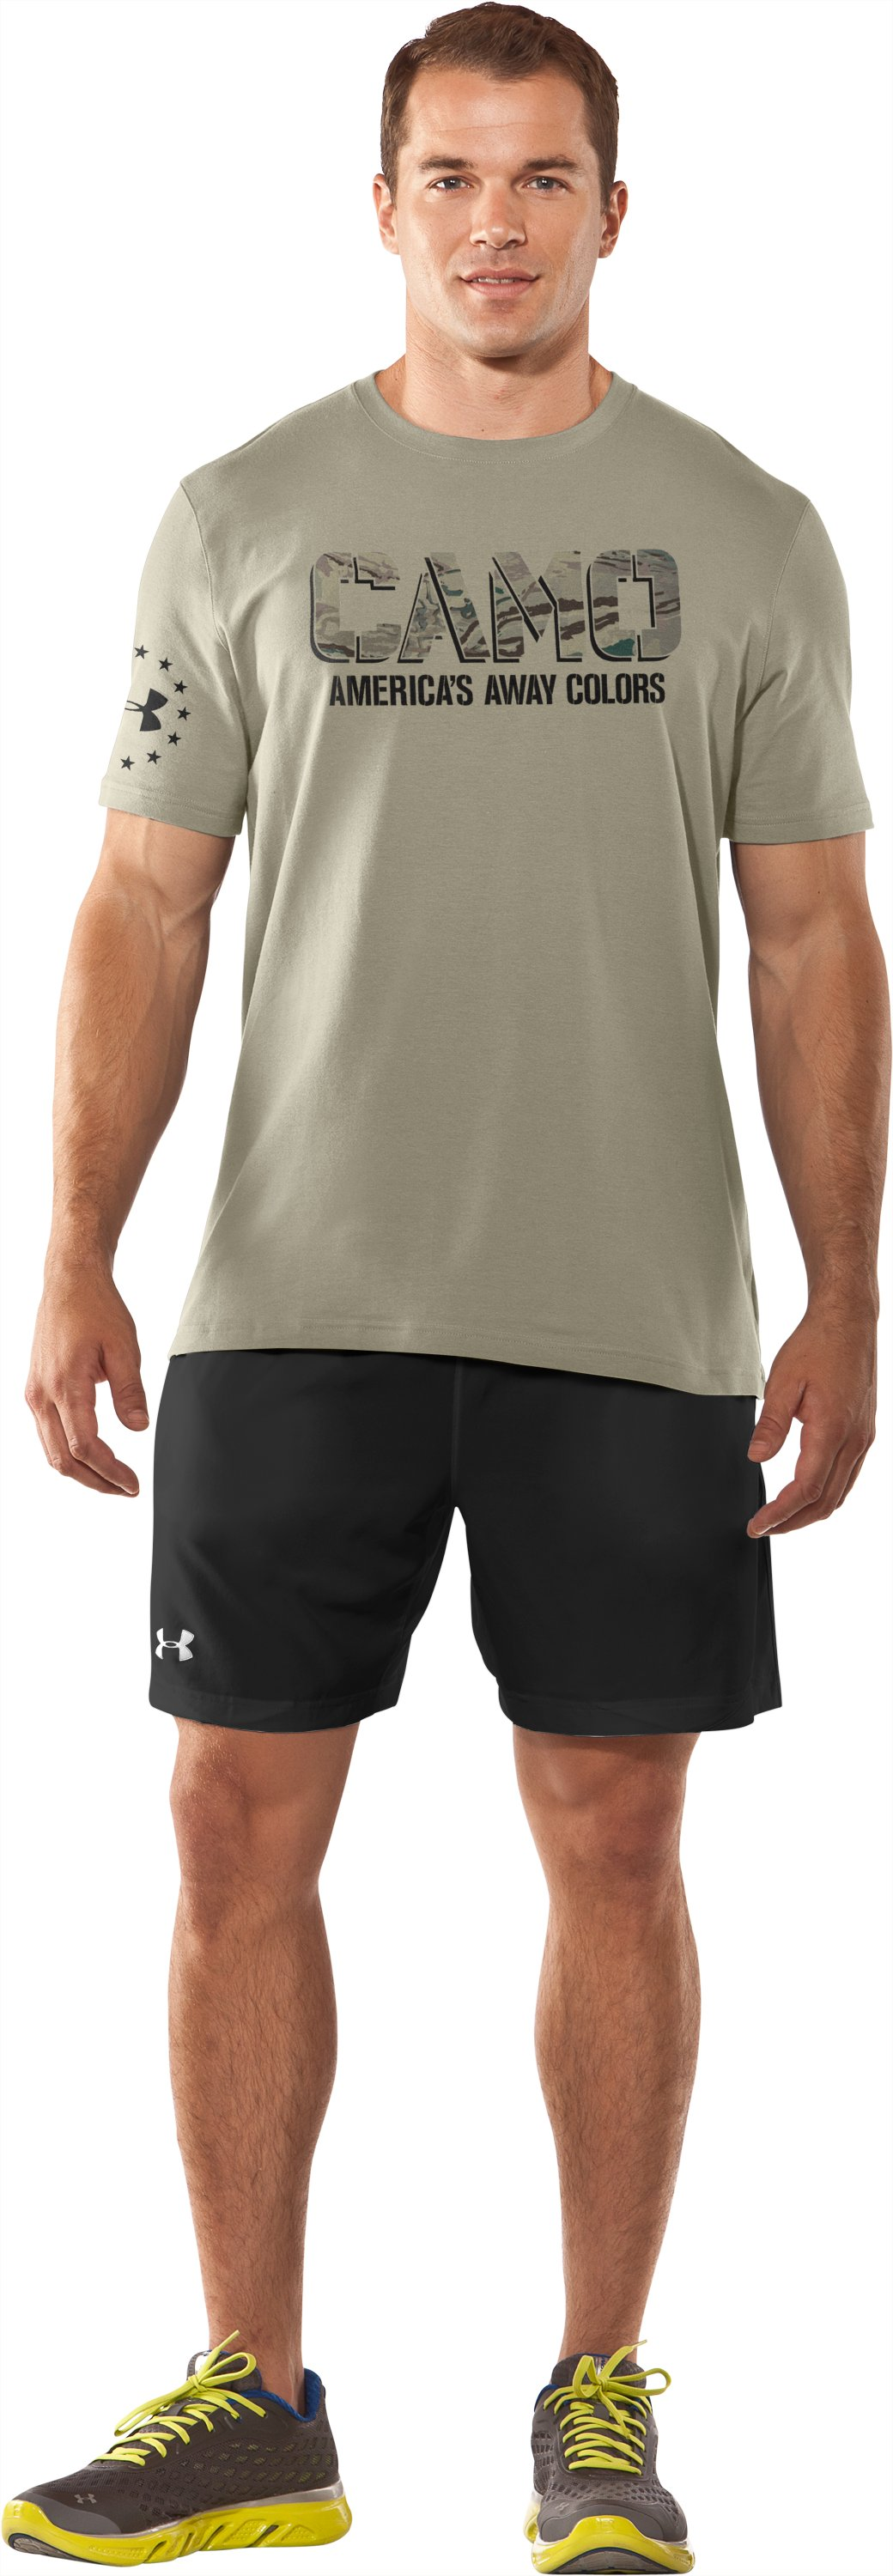 Men's USA Away Colors T-Shirt, Desert Sand